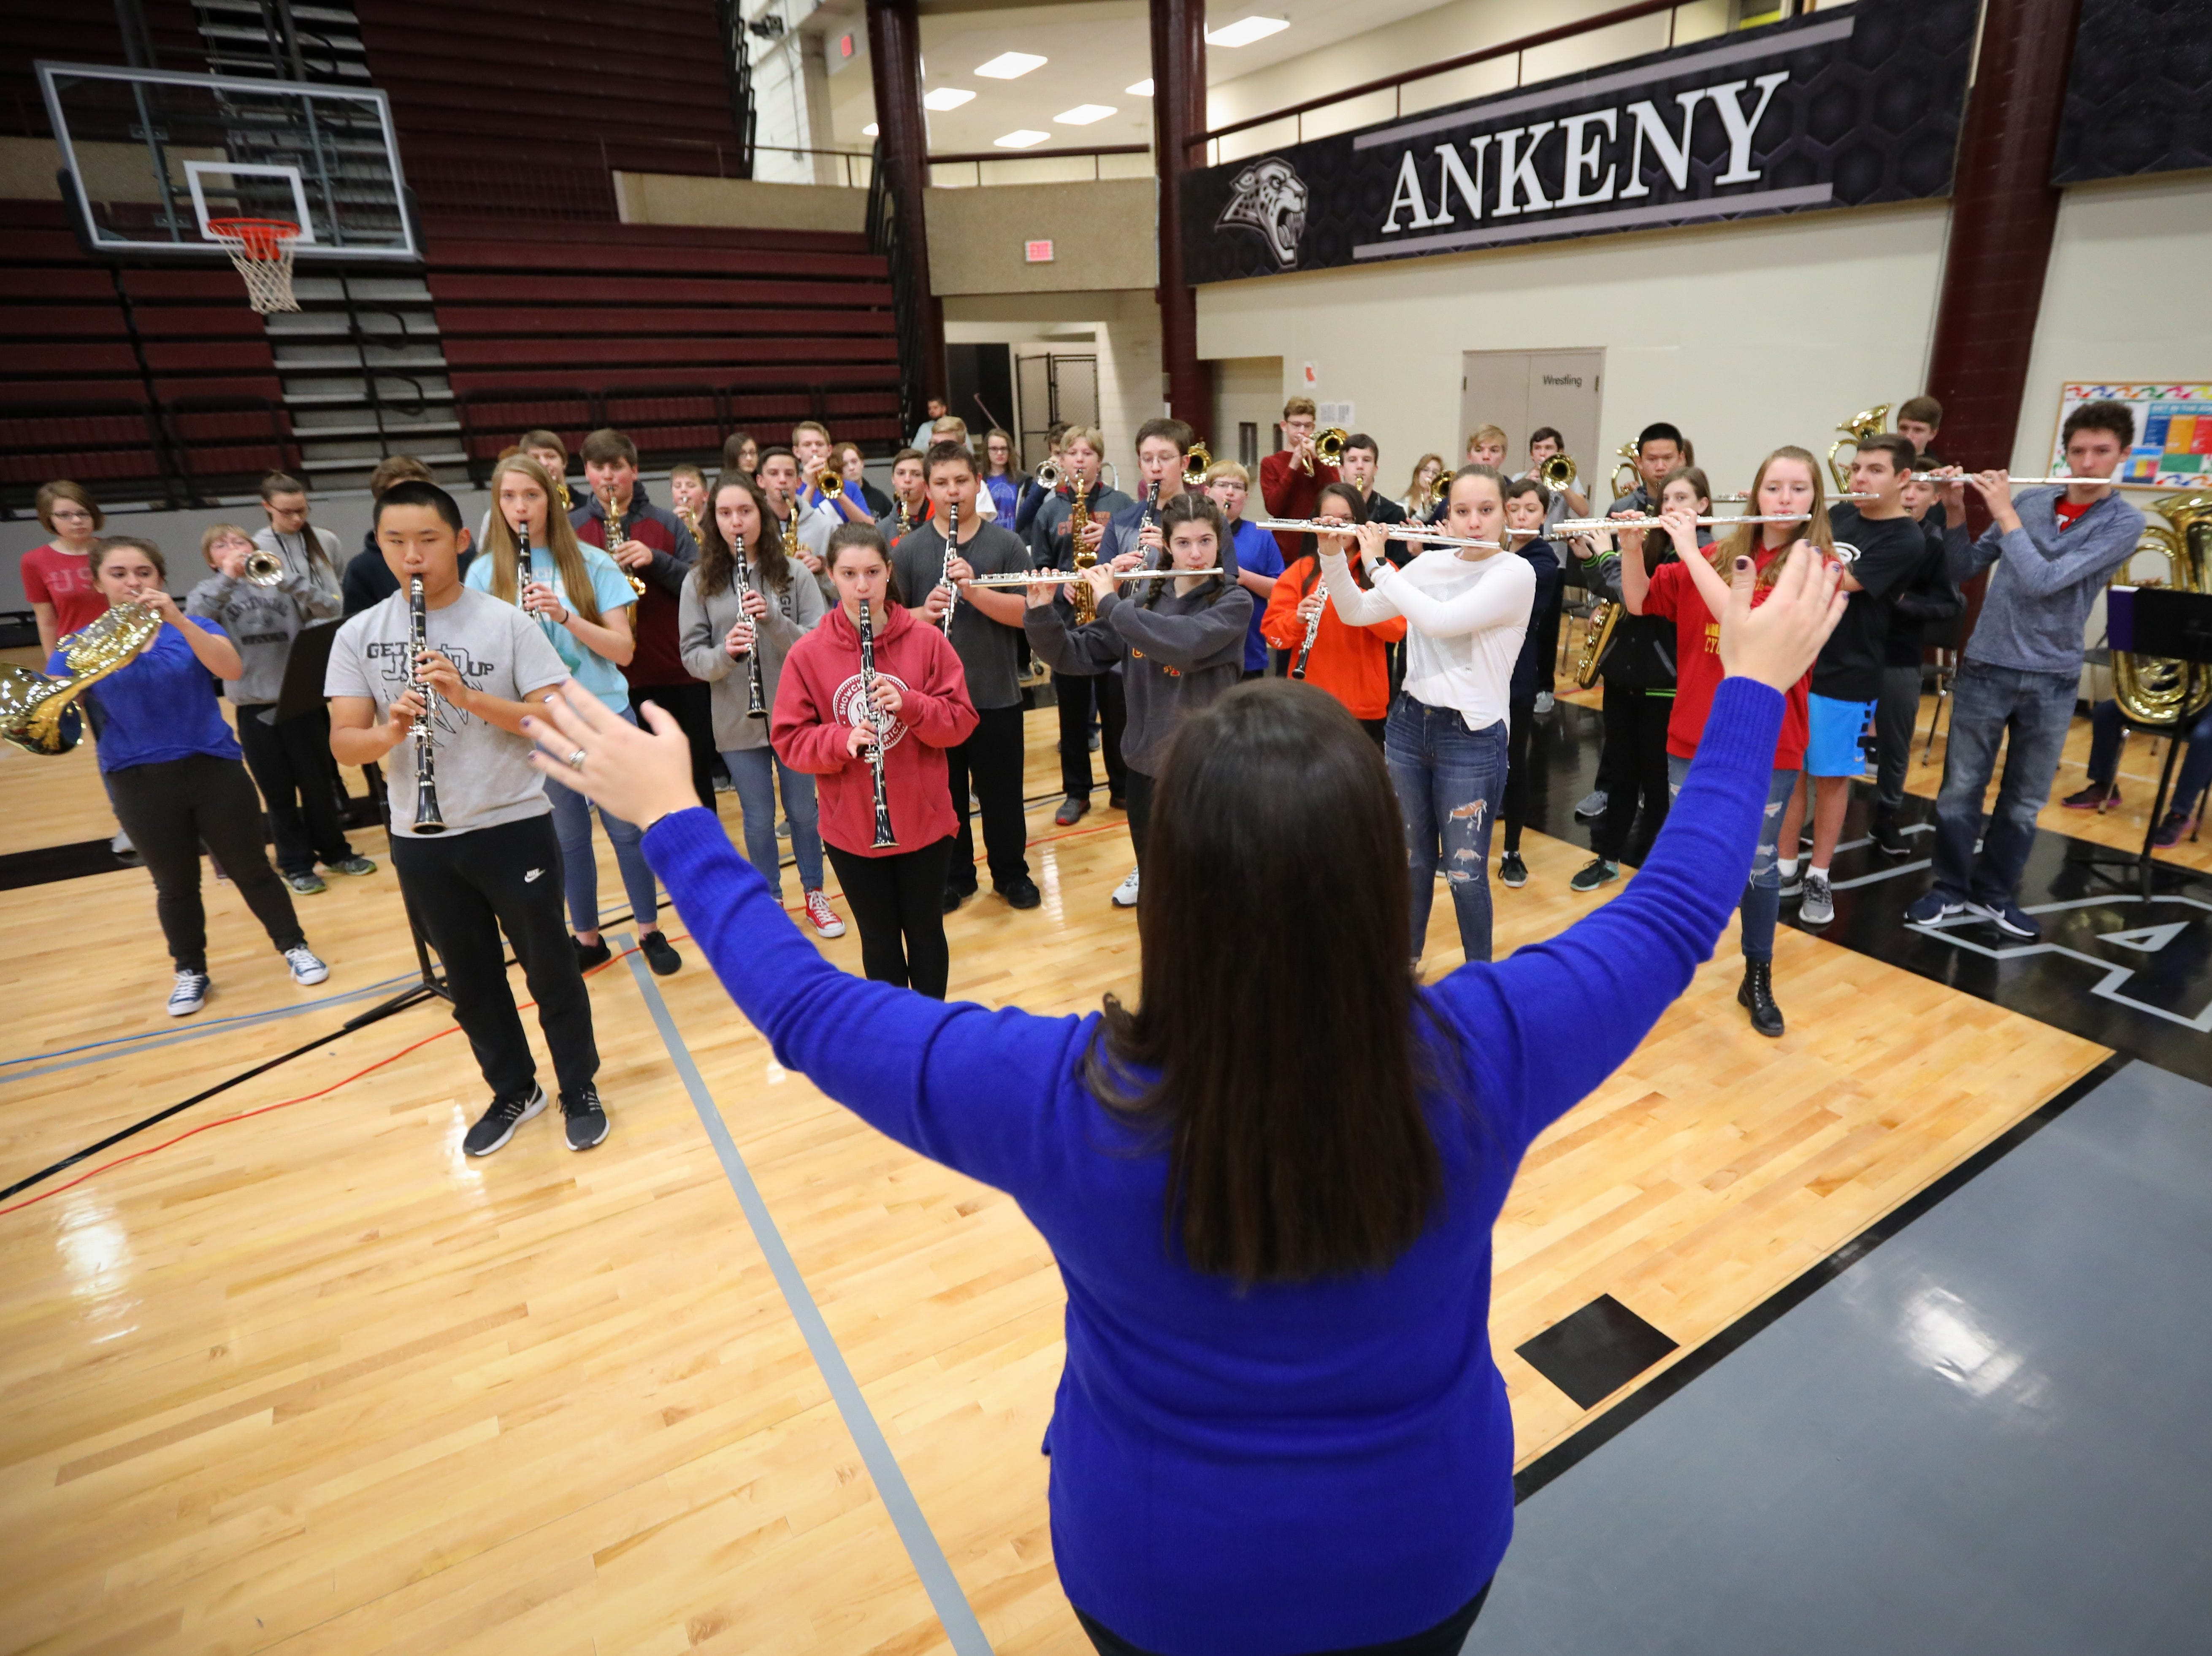 The Northview Middle School Band plays the national anthem at Veteran's Day Breakfast at Northview Middle School on Wednesday, Nov. 14, 2018 in Ankeny, Iowa.